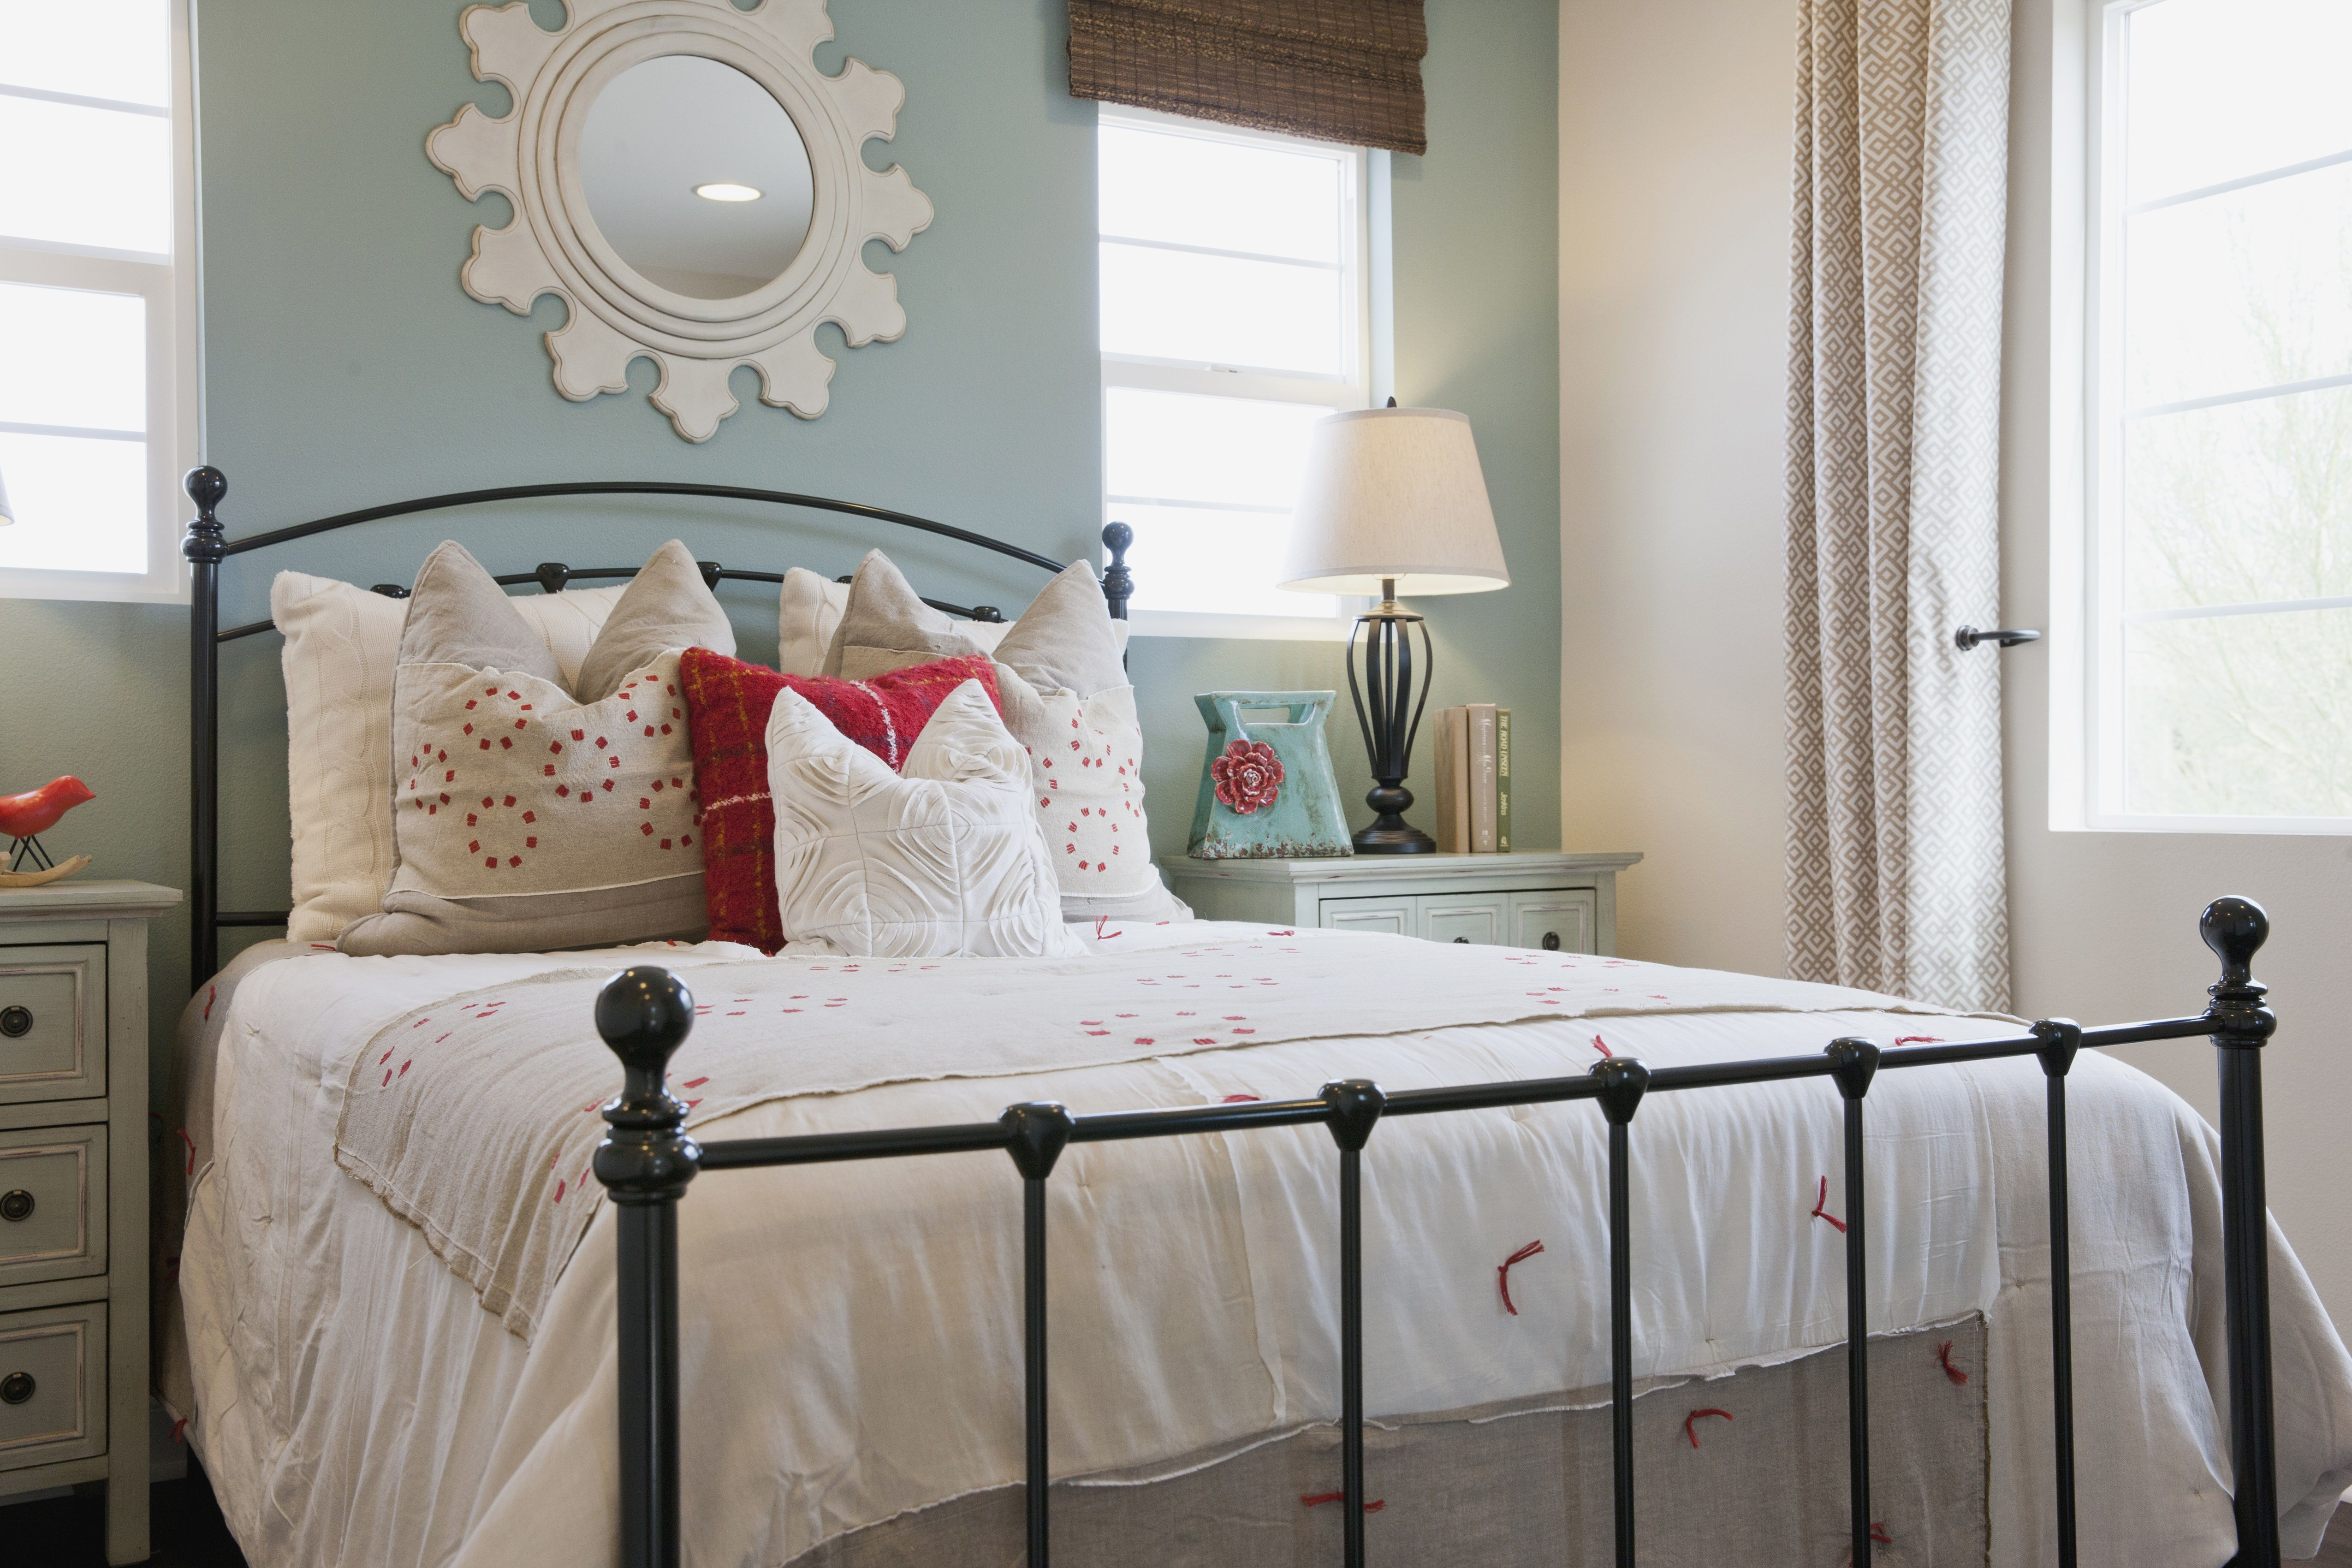 s and Tips for Decorating a Shabby Chic Bedroom